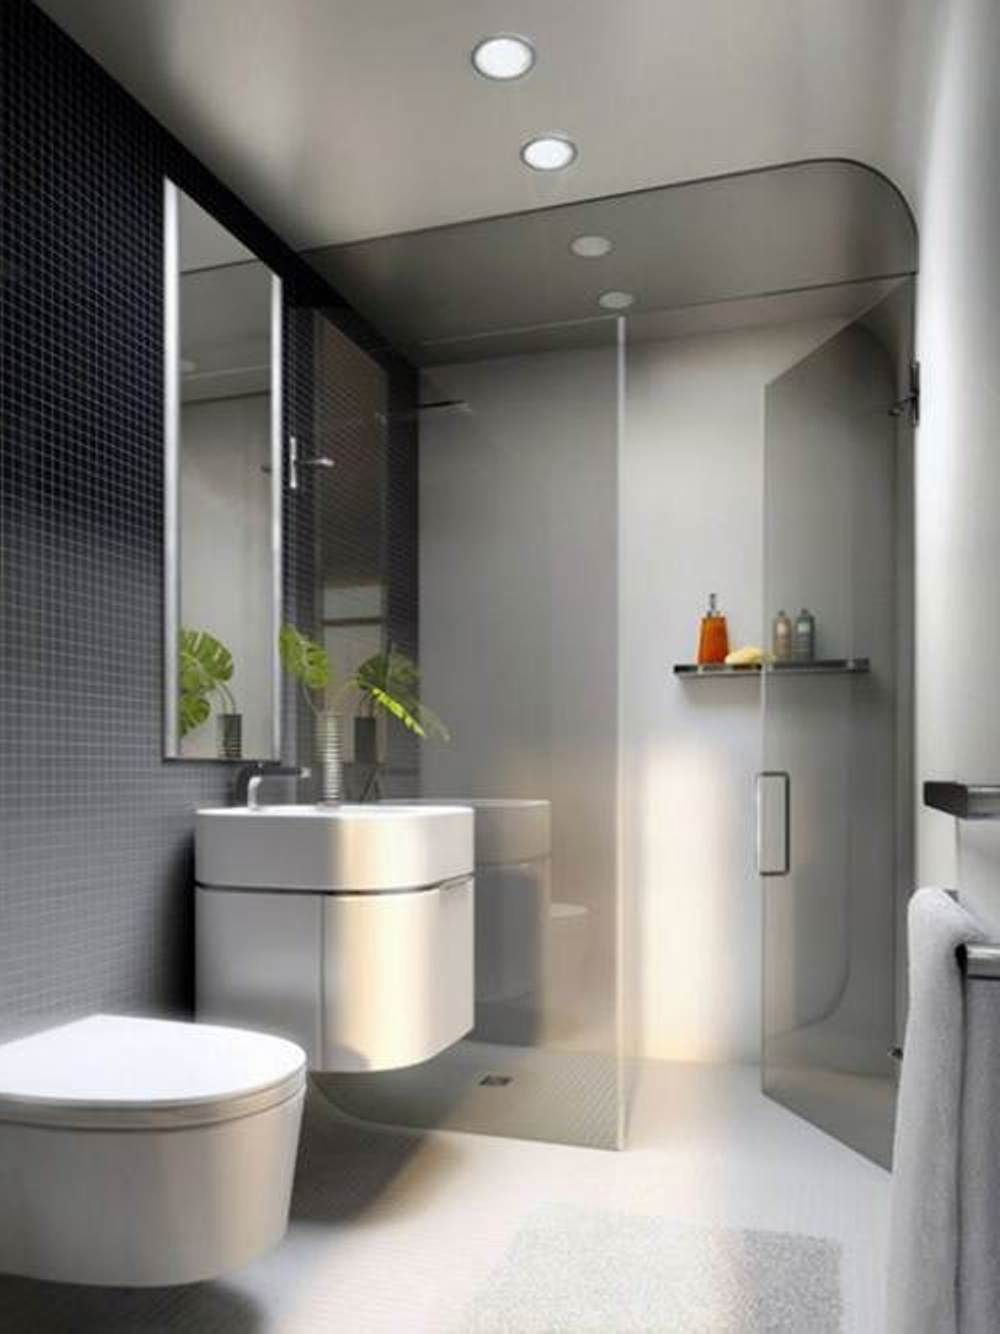 Modern Bathroom Design Ideas Pictures Tips From Hgtv: Awesome Small Modern Bathroom Designs